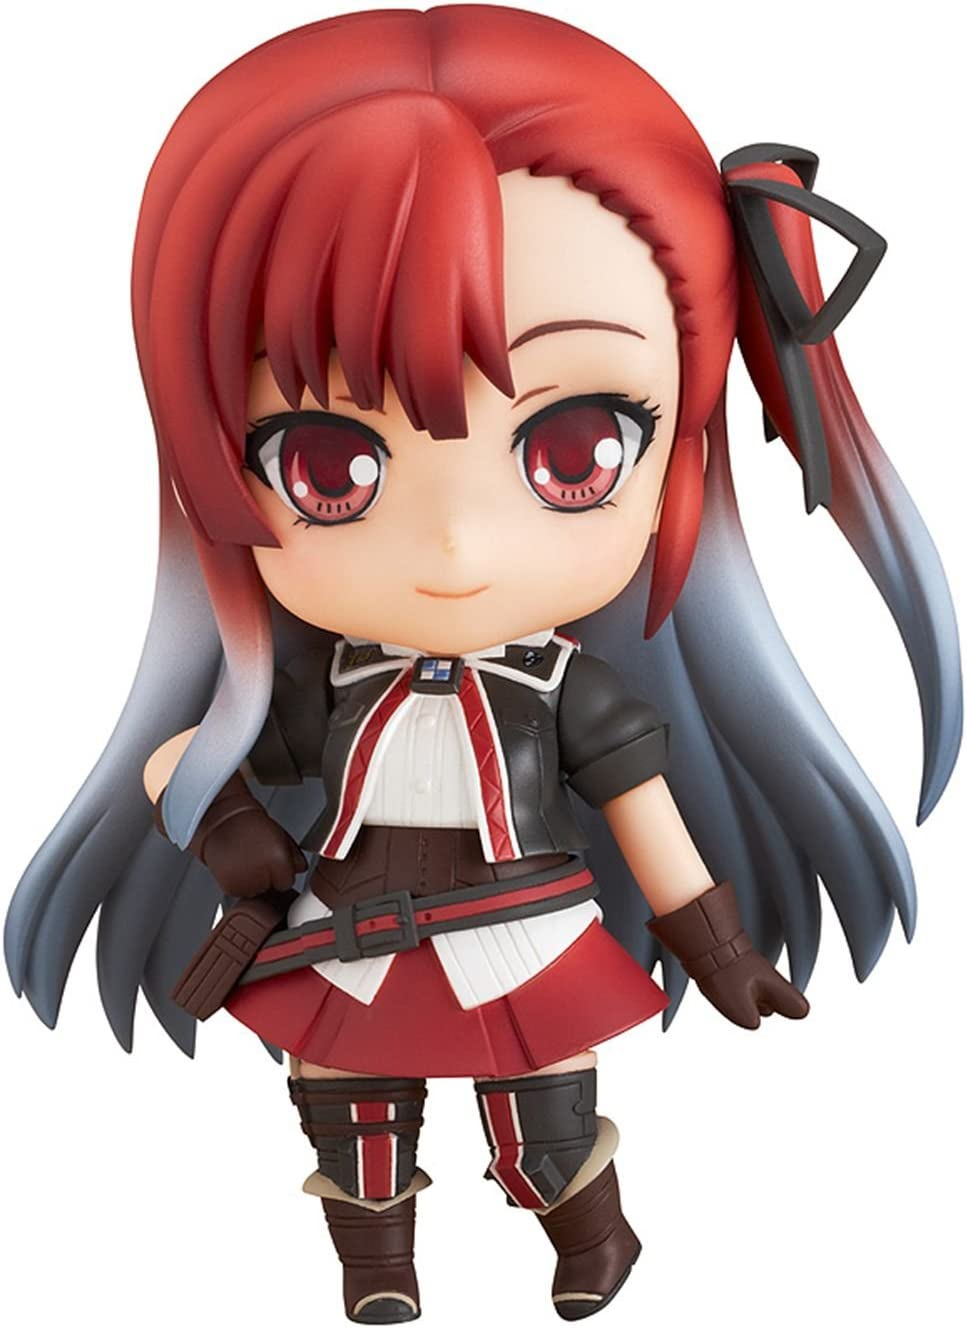 Good Smile Max 61% OFF Valkyria Chronicles Limited time trial price 3: Figure Nendoroid Action Riela